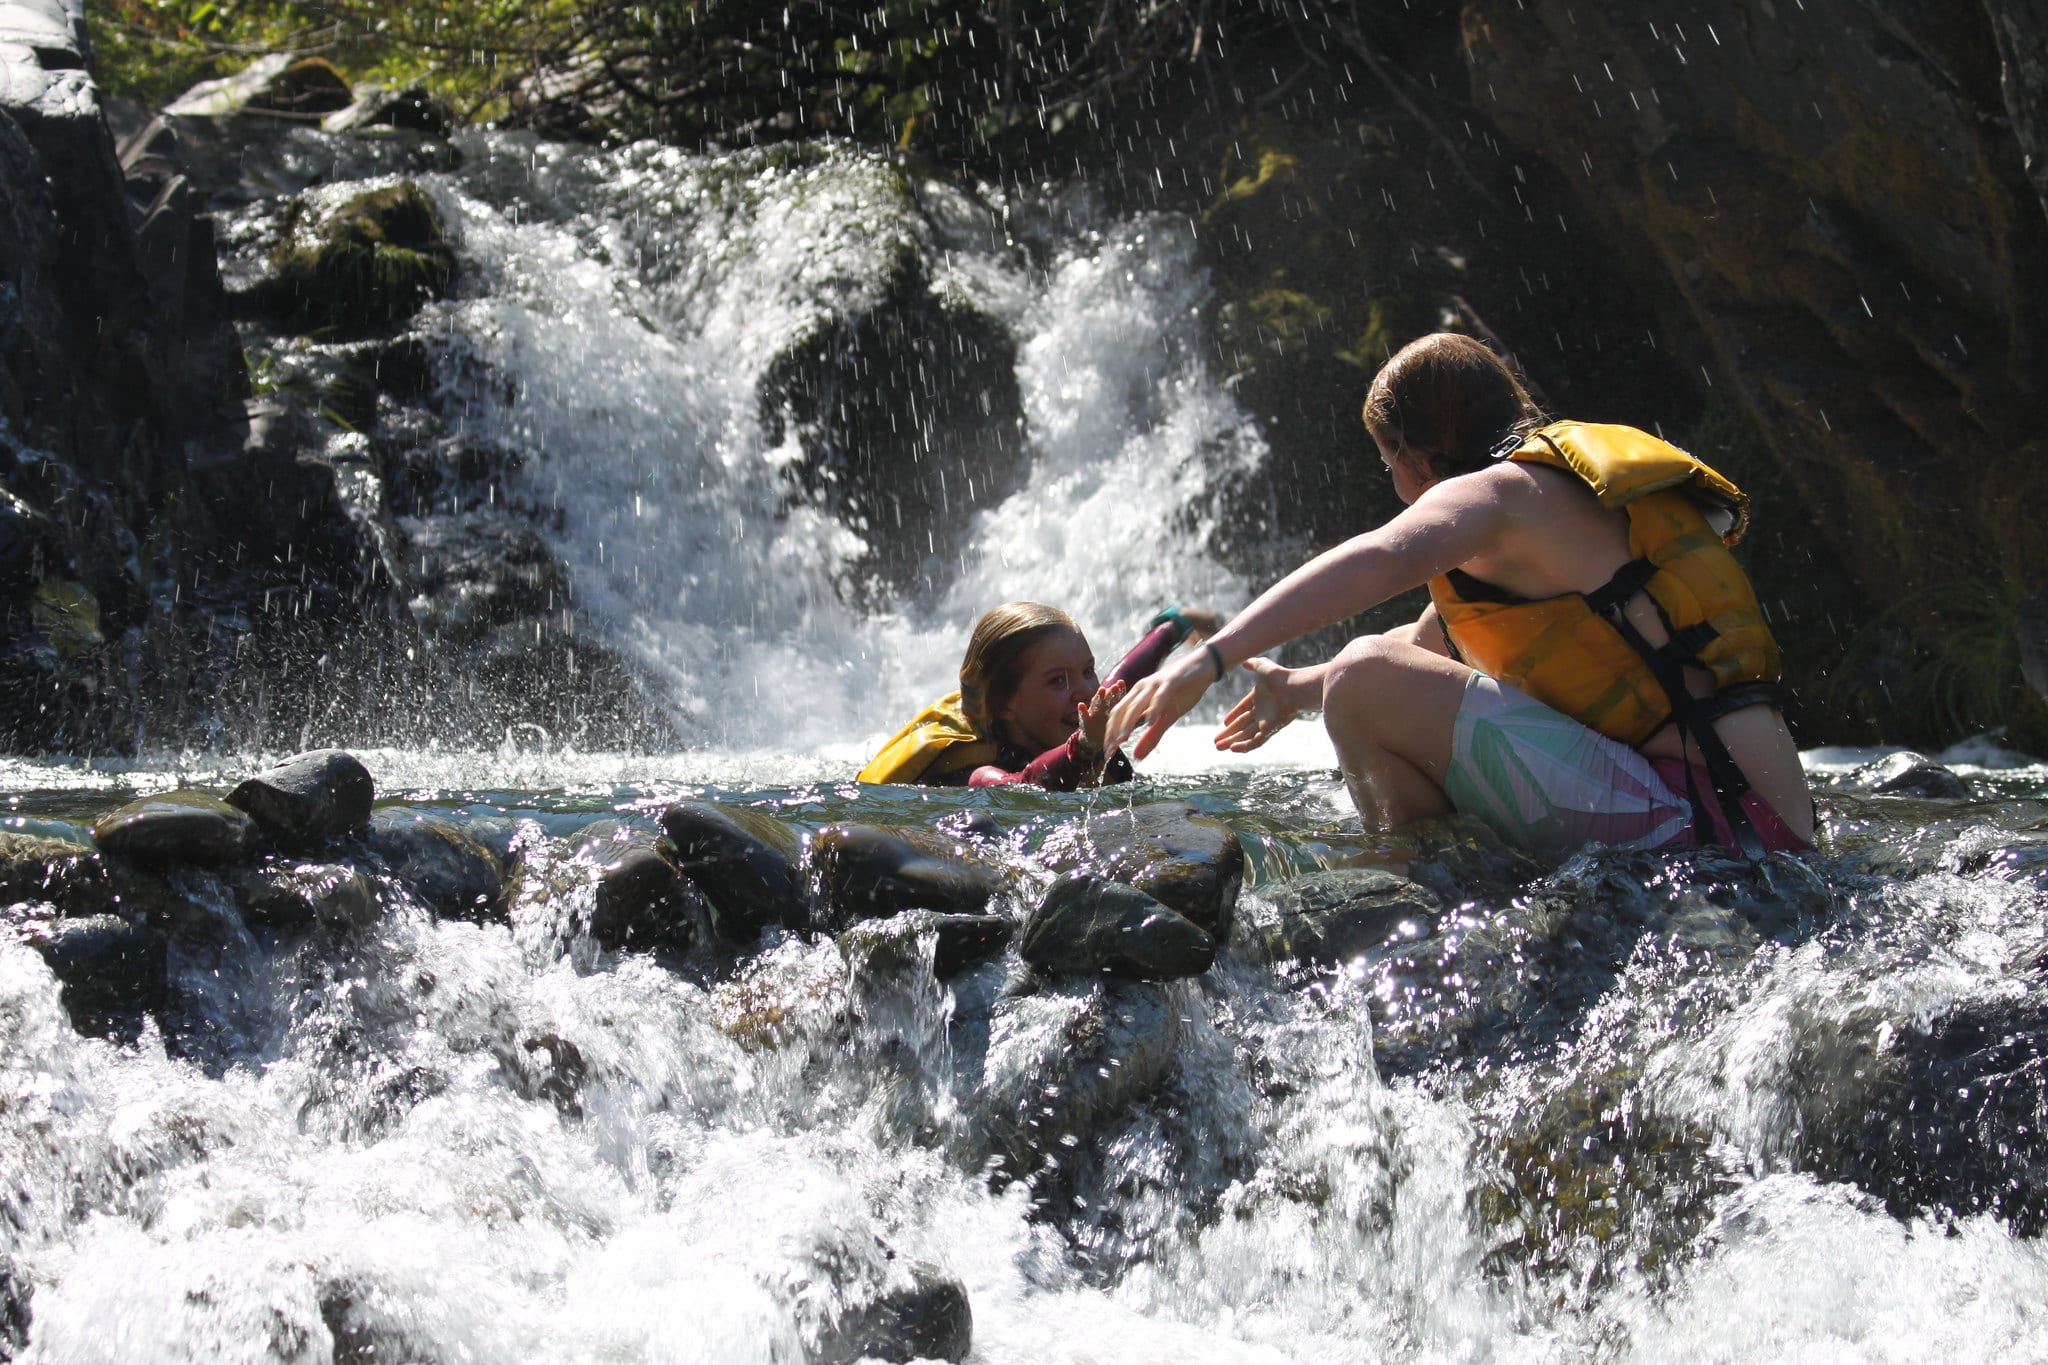 Cooling off in side creek-Momentum